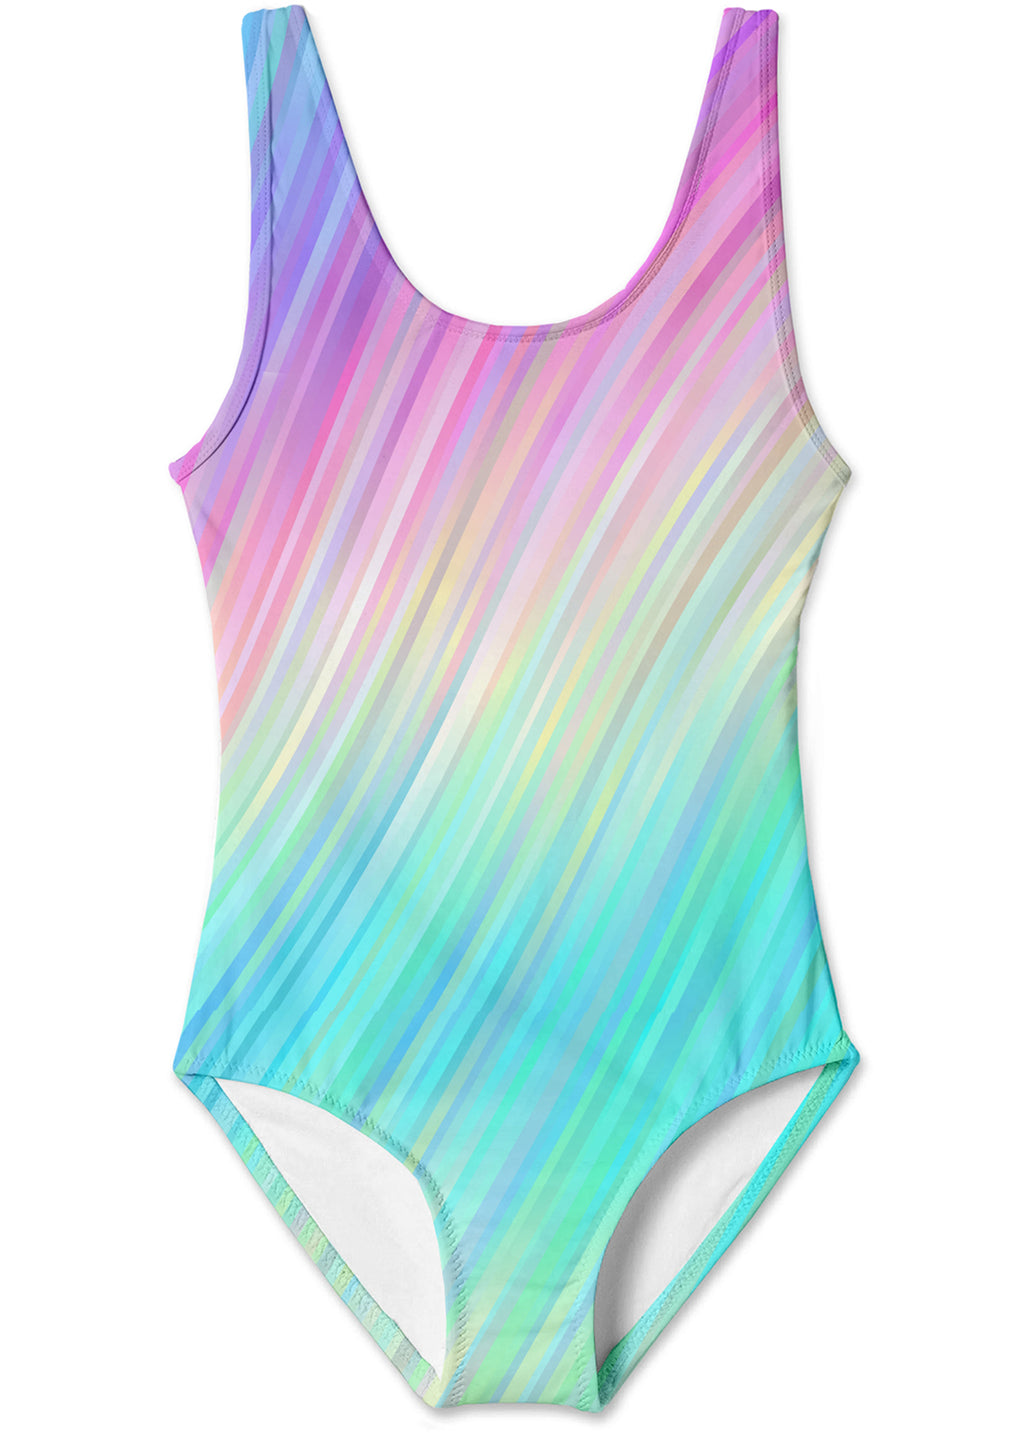 colorful bathing suit for girls, swimsuits for girls, colorful swimwear for girls, beachwear for girls